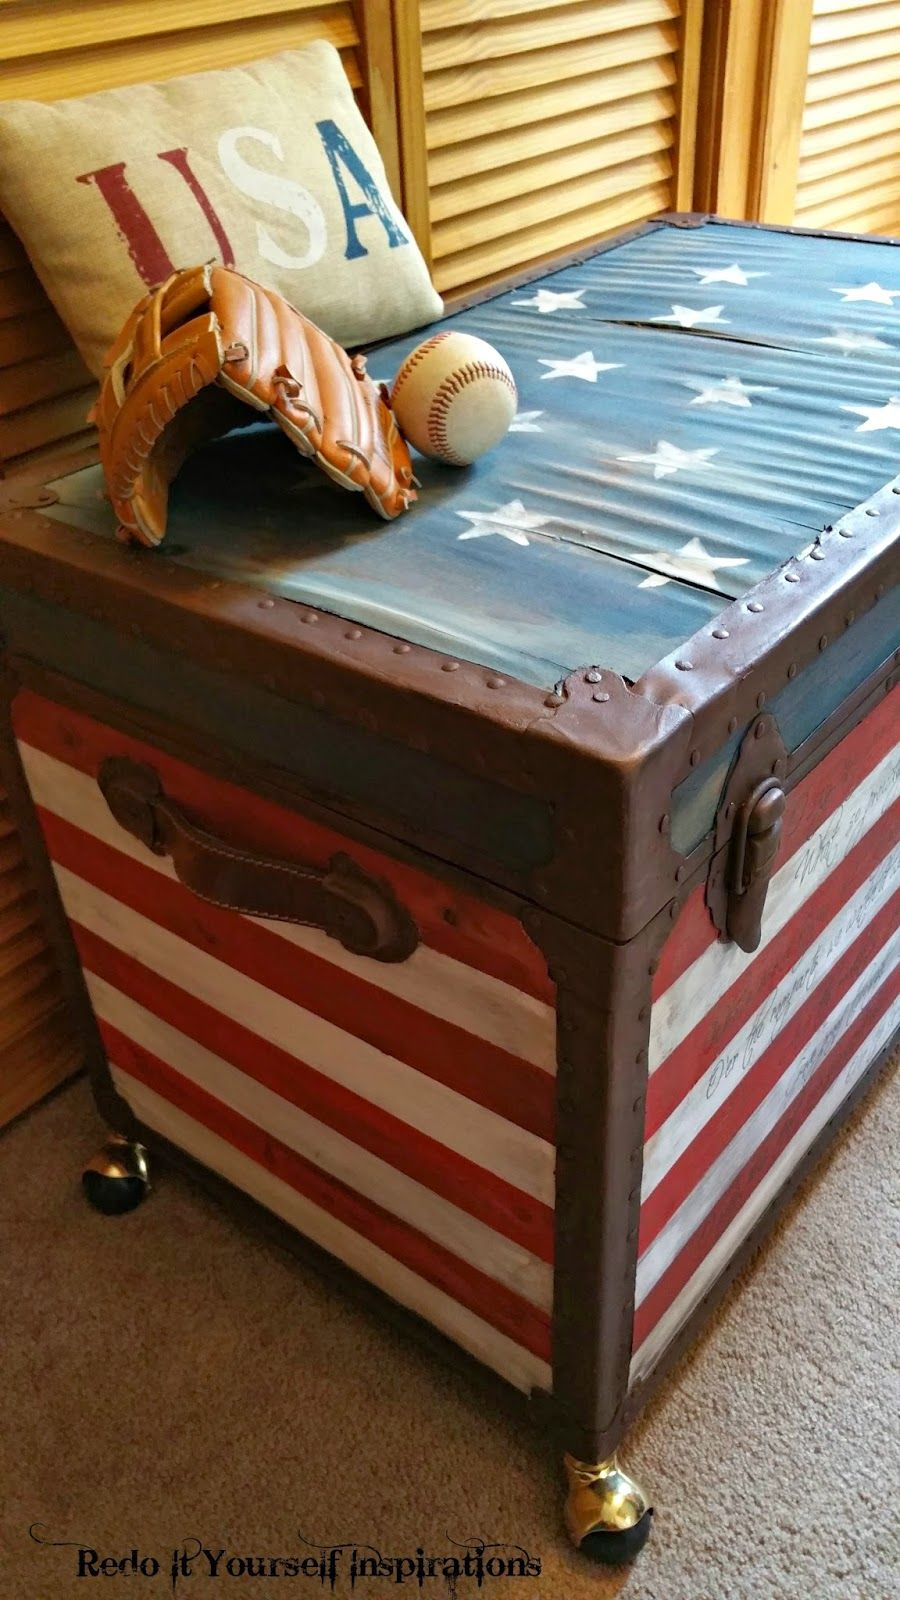 Exceptionnel Painted Flag Trunk #DIY #furniturepainting #starsandstripes #americanflag  #antiquetrunk #homedecor   Www.countrychicpaint.com/blog